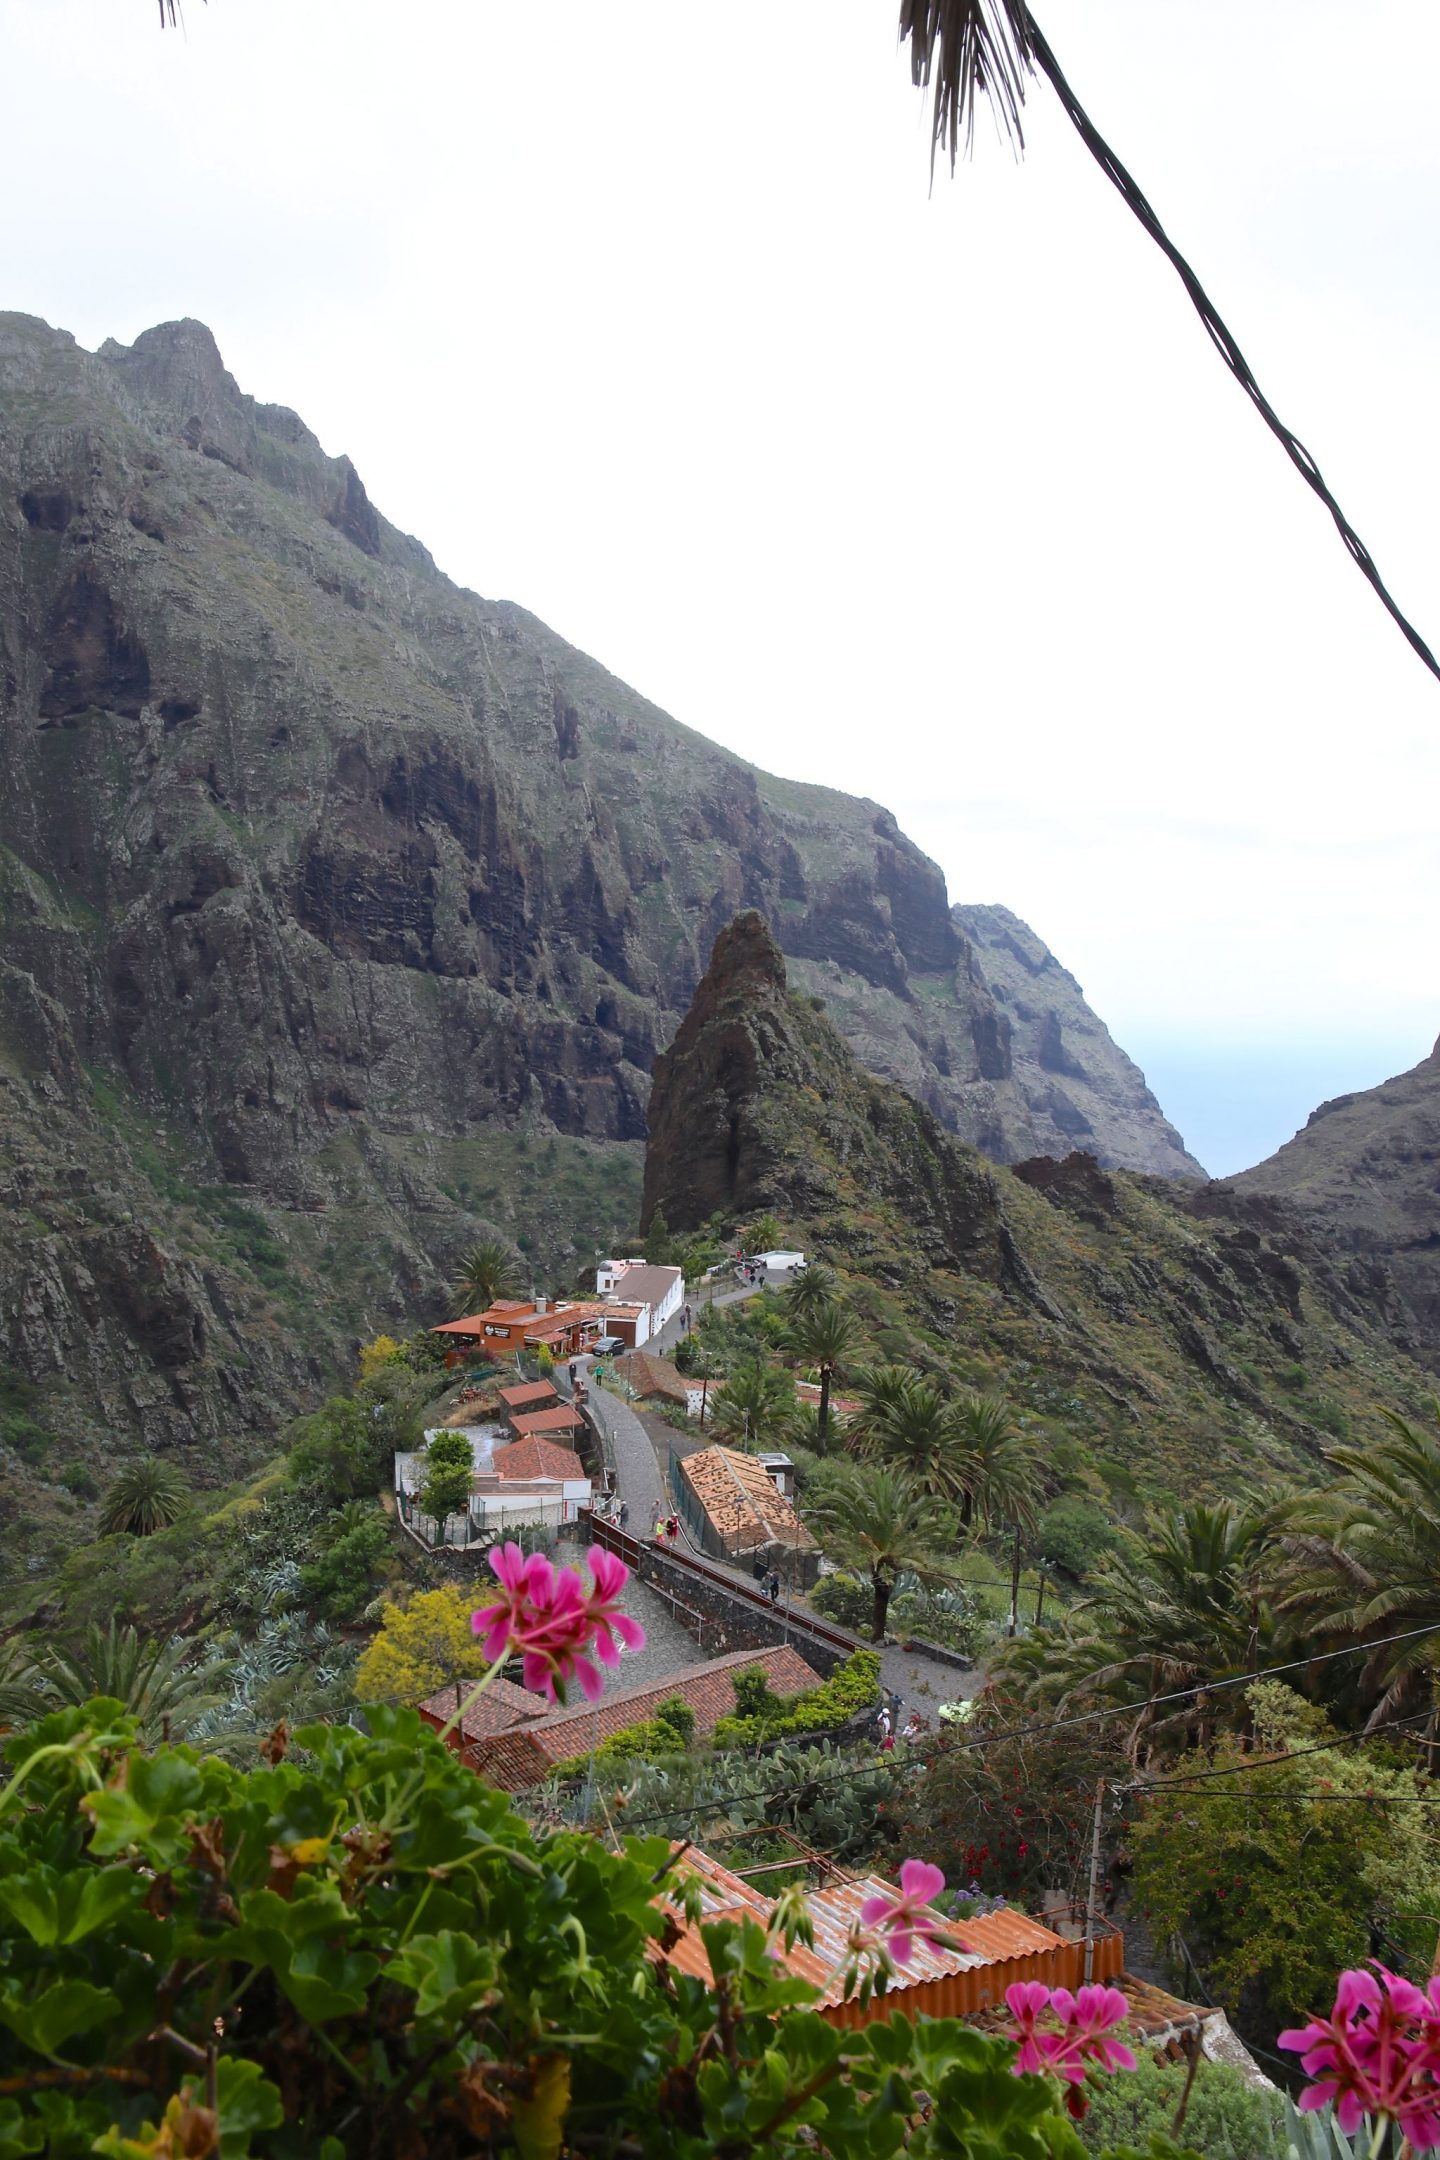 Masca, Tenerife, Canary Islands, Katie Heath, KALANCHOE